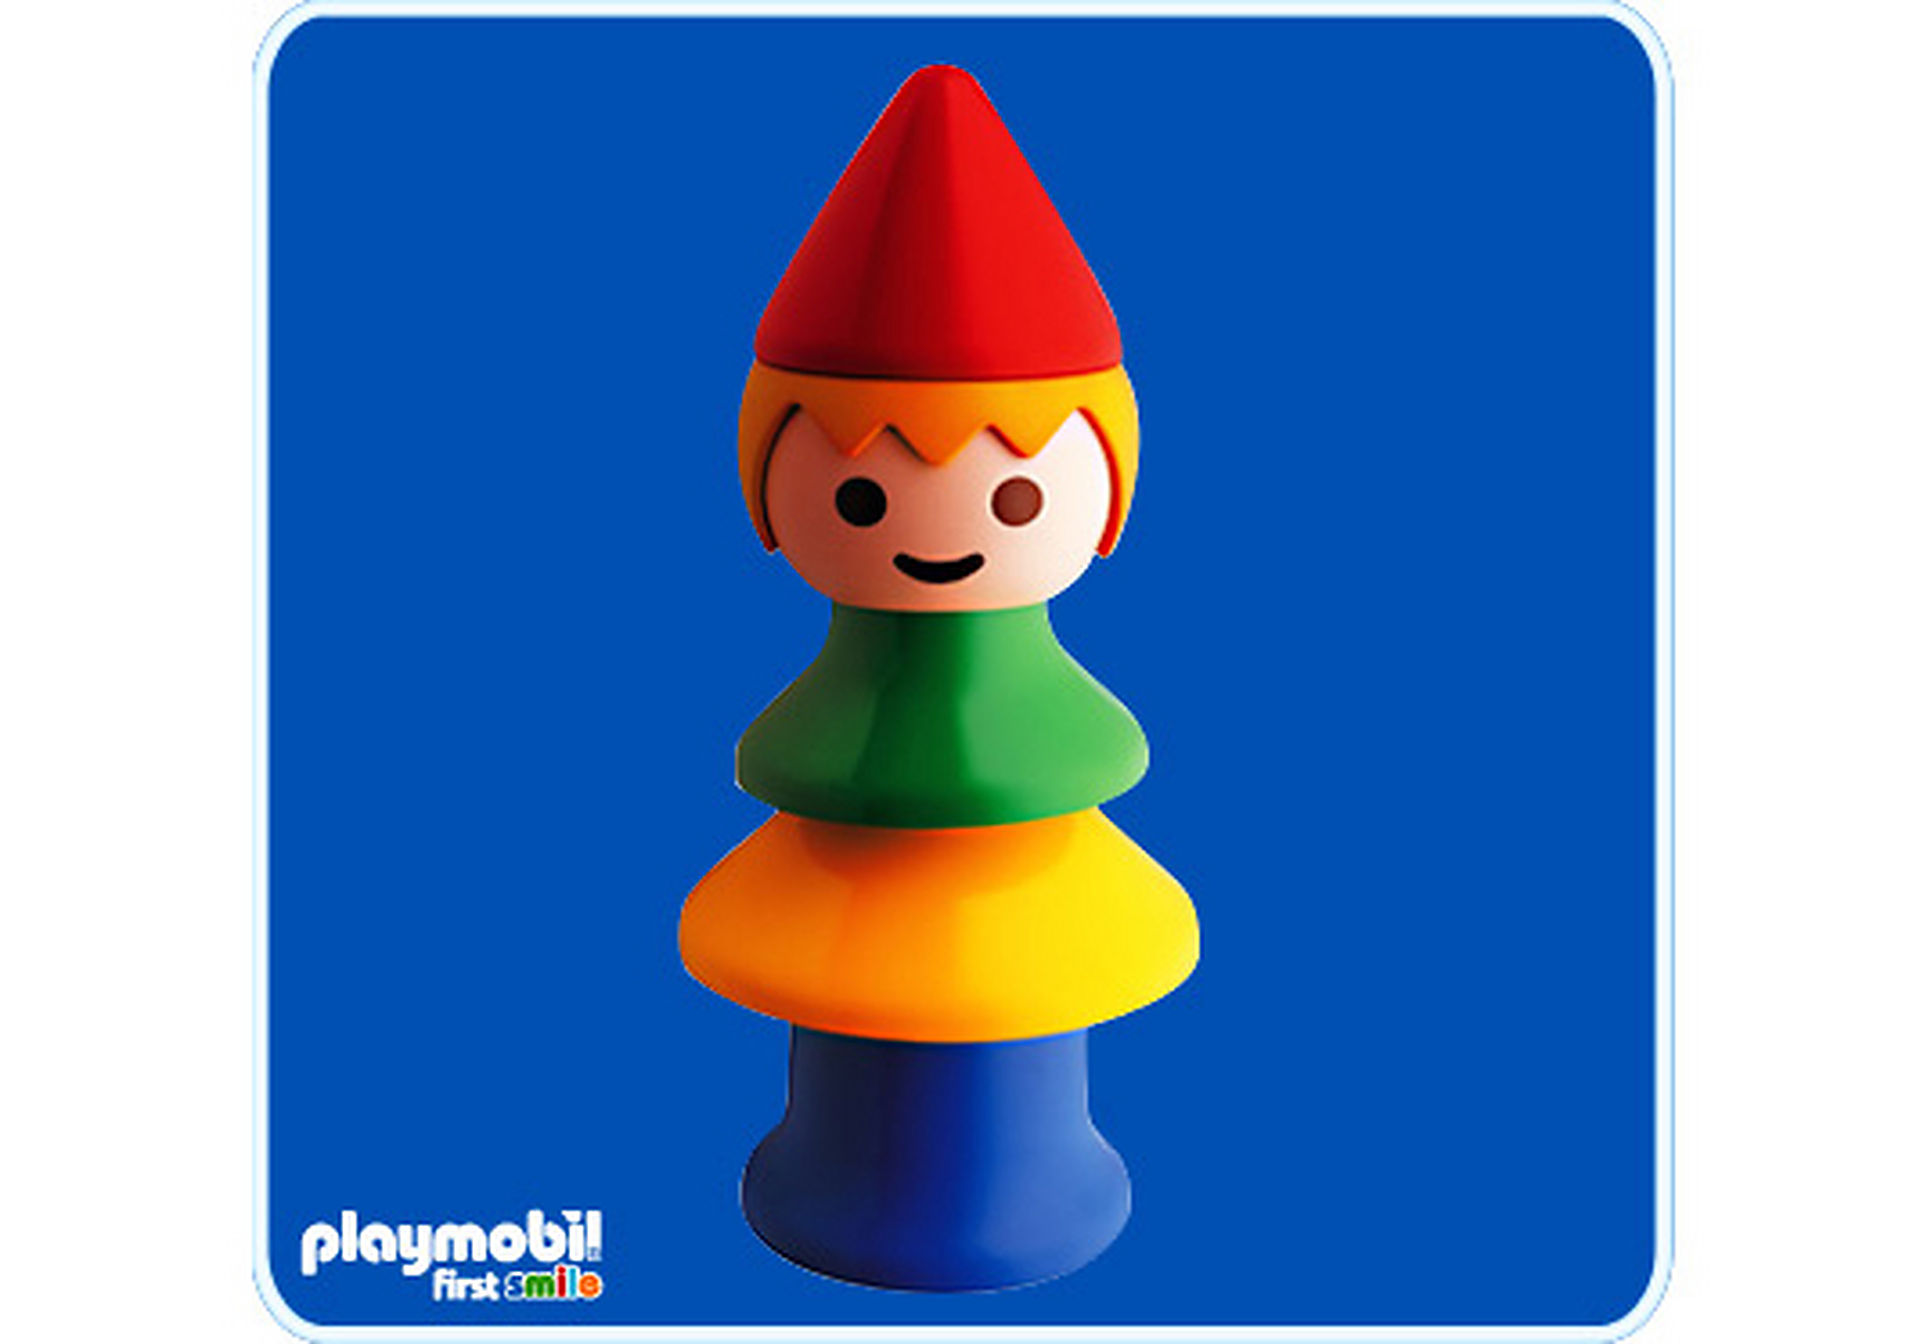 http://media.playmobil.com/i/playmobil/6401-A_product_detail/Stapelfigur